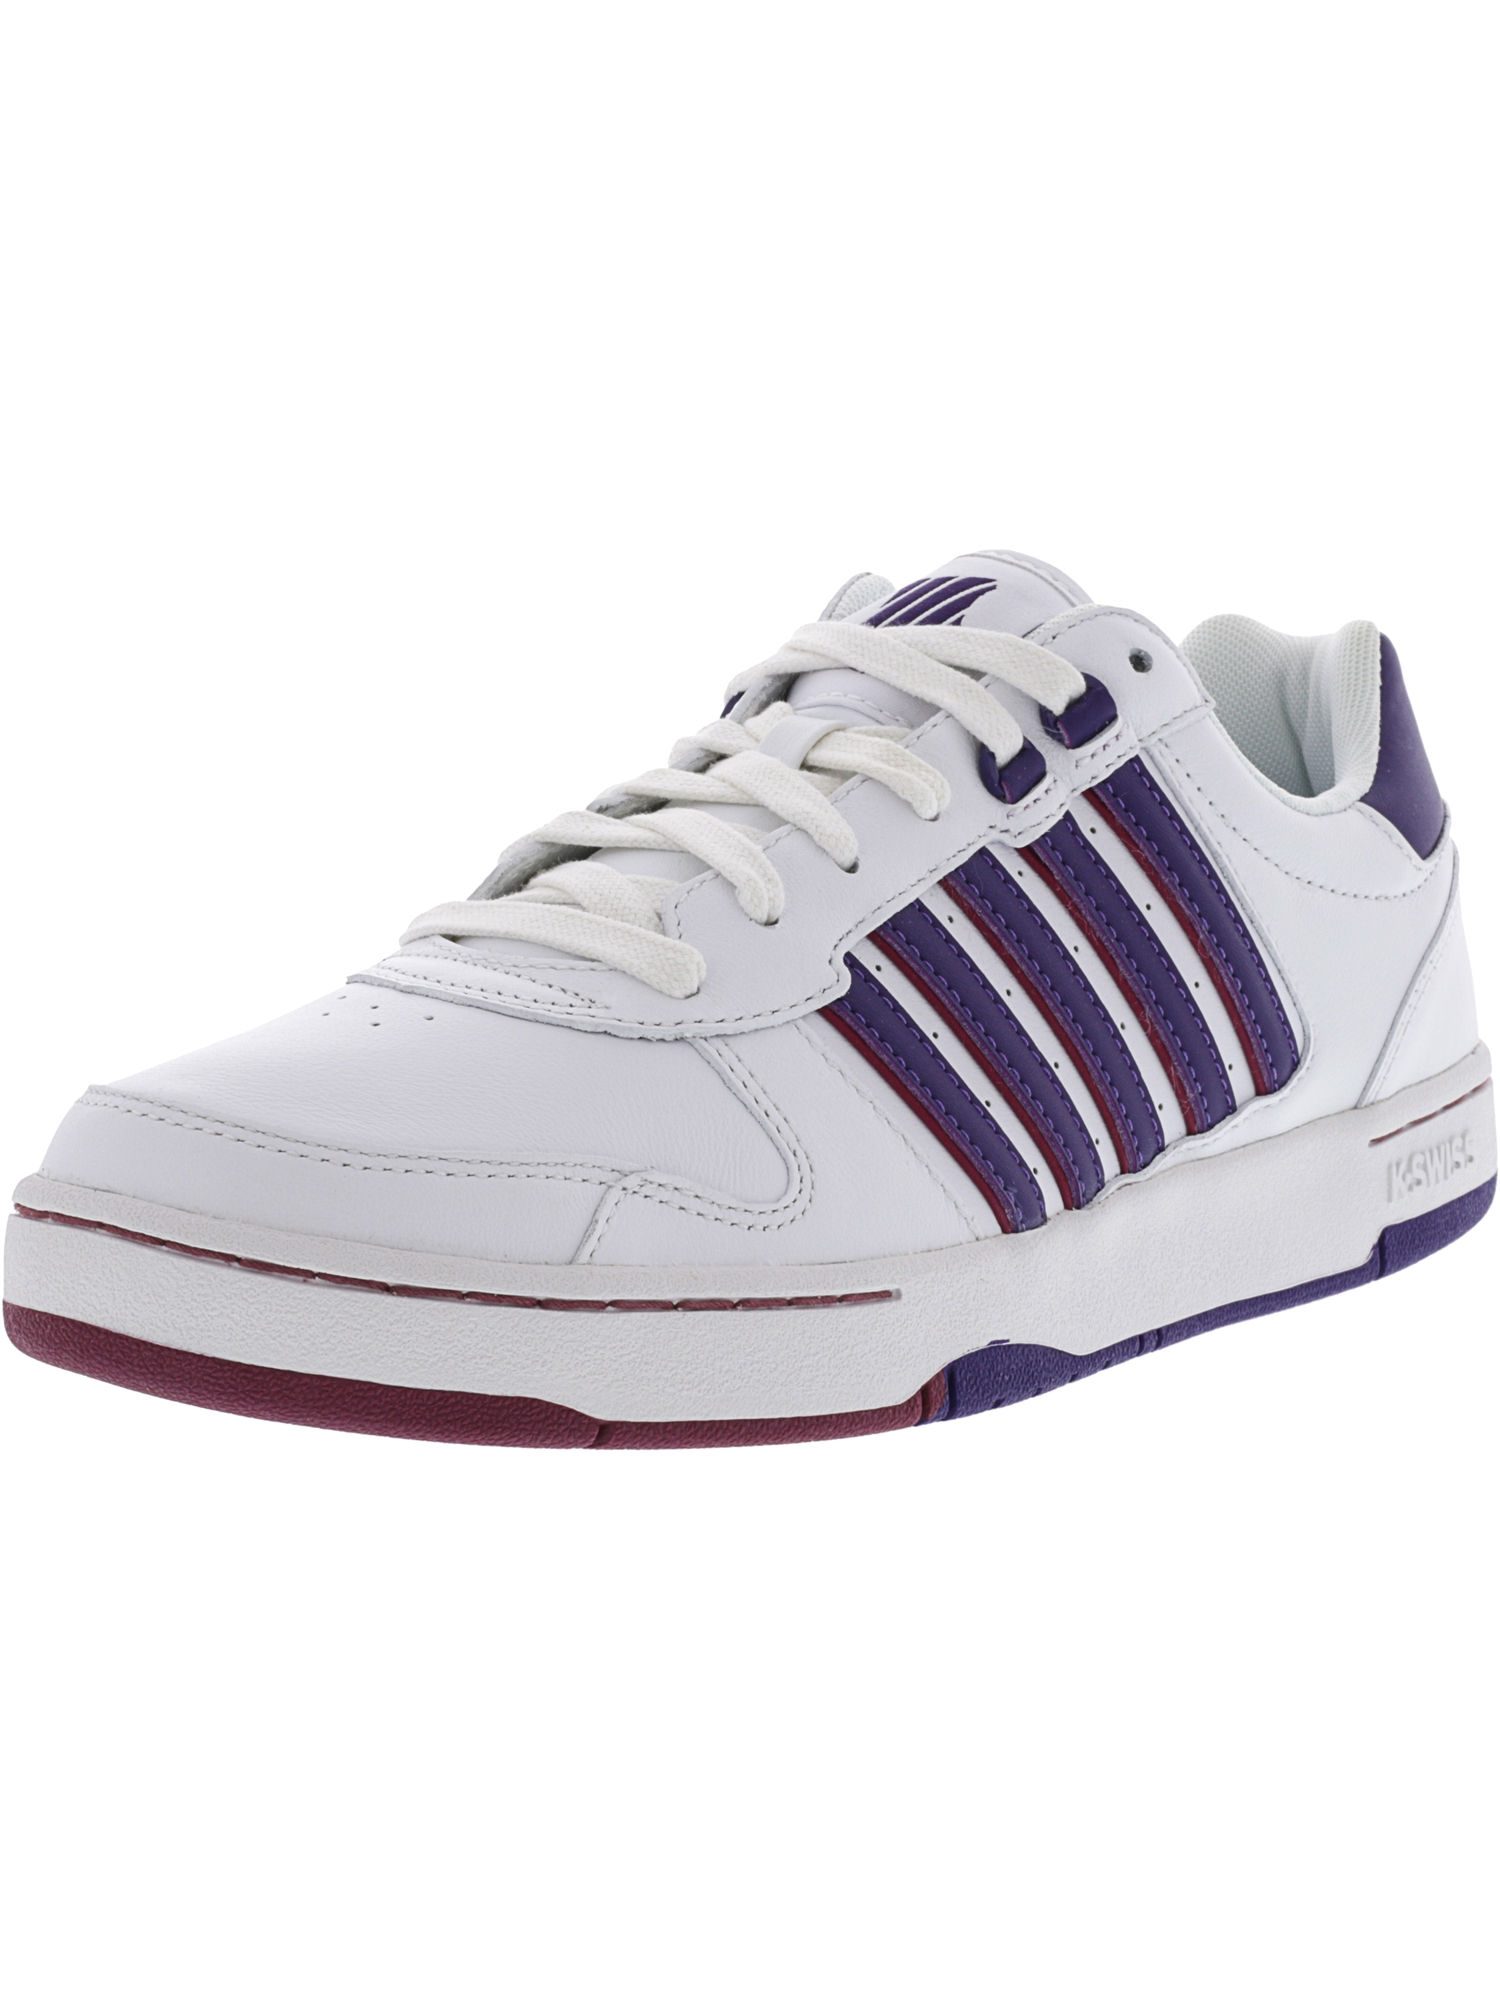 K-Swiss Women's Jackson White / Parachute Purple Beet Red Ankle-High Leather Fashion Sneaker - 10M